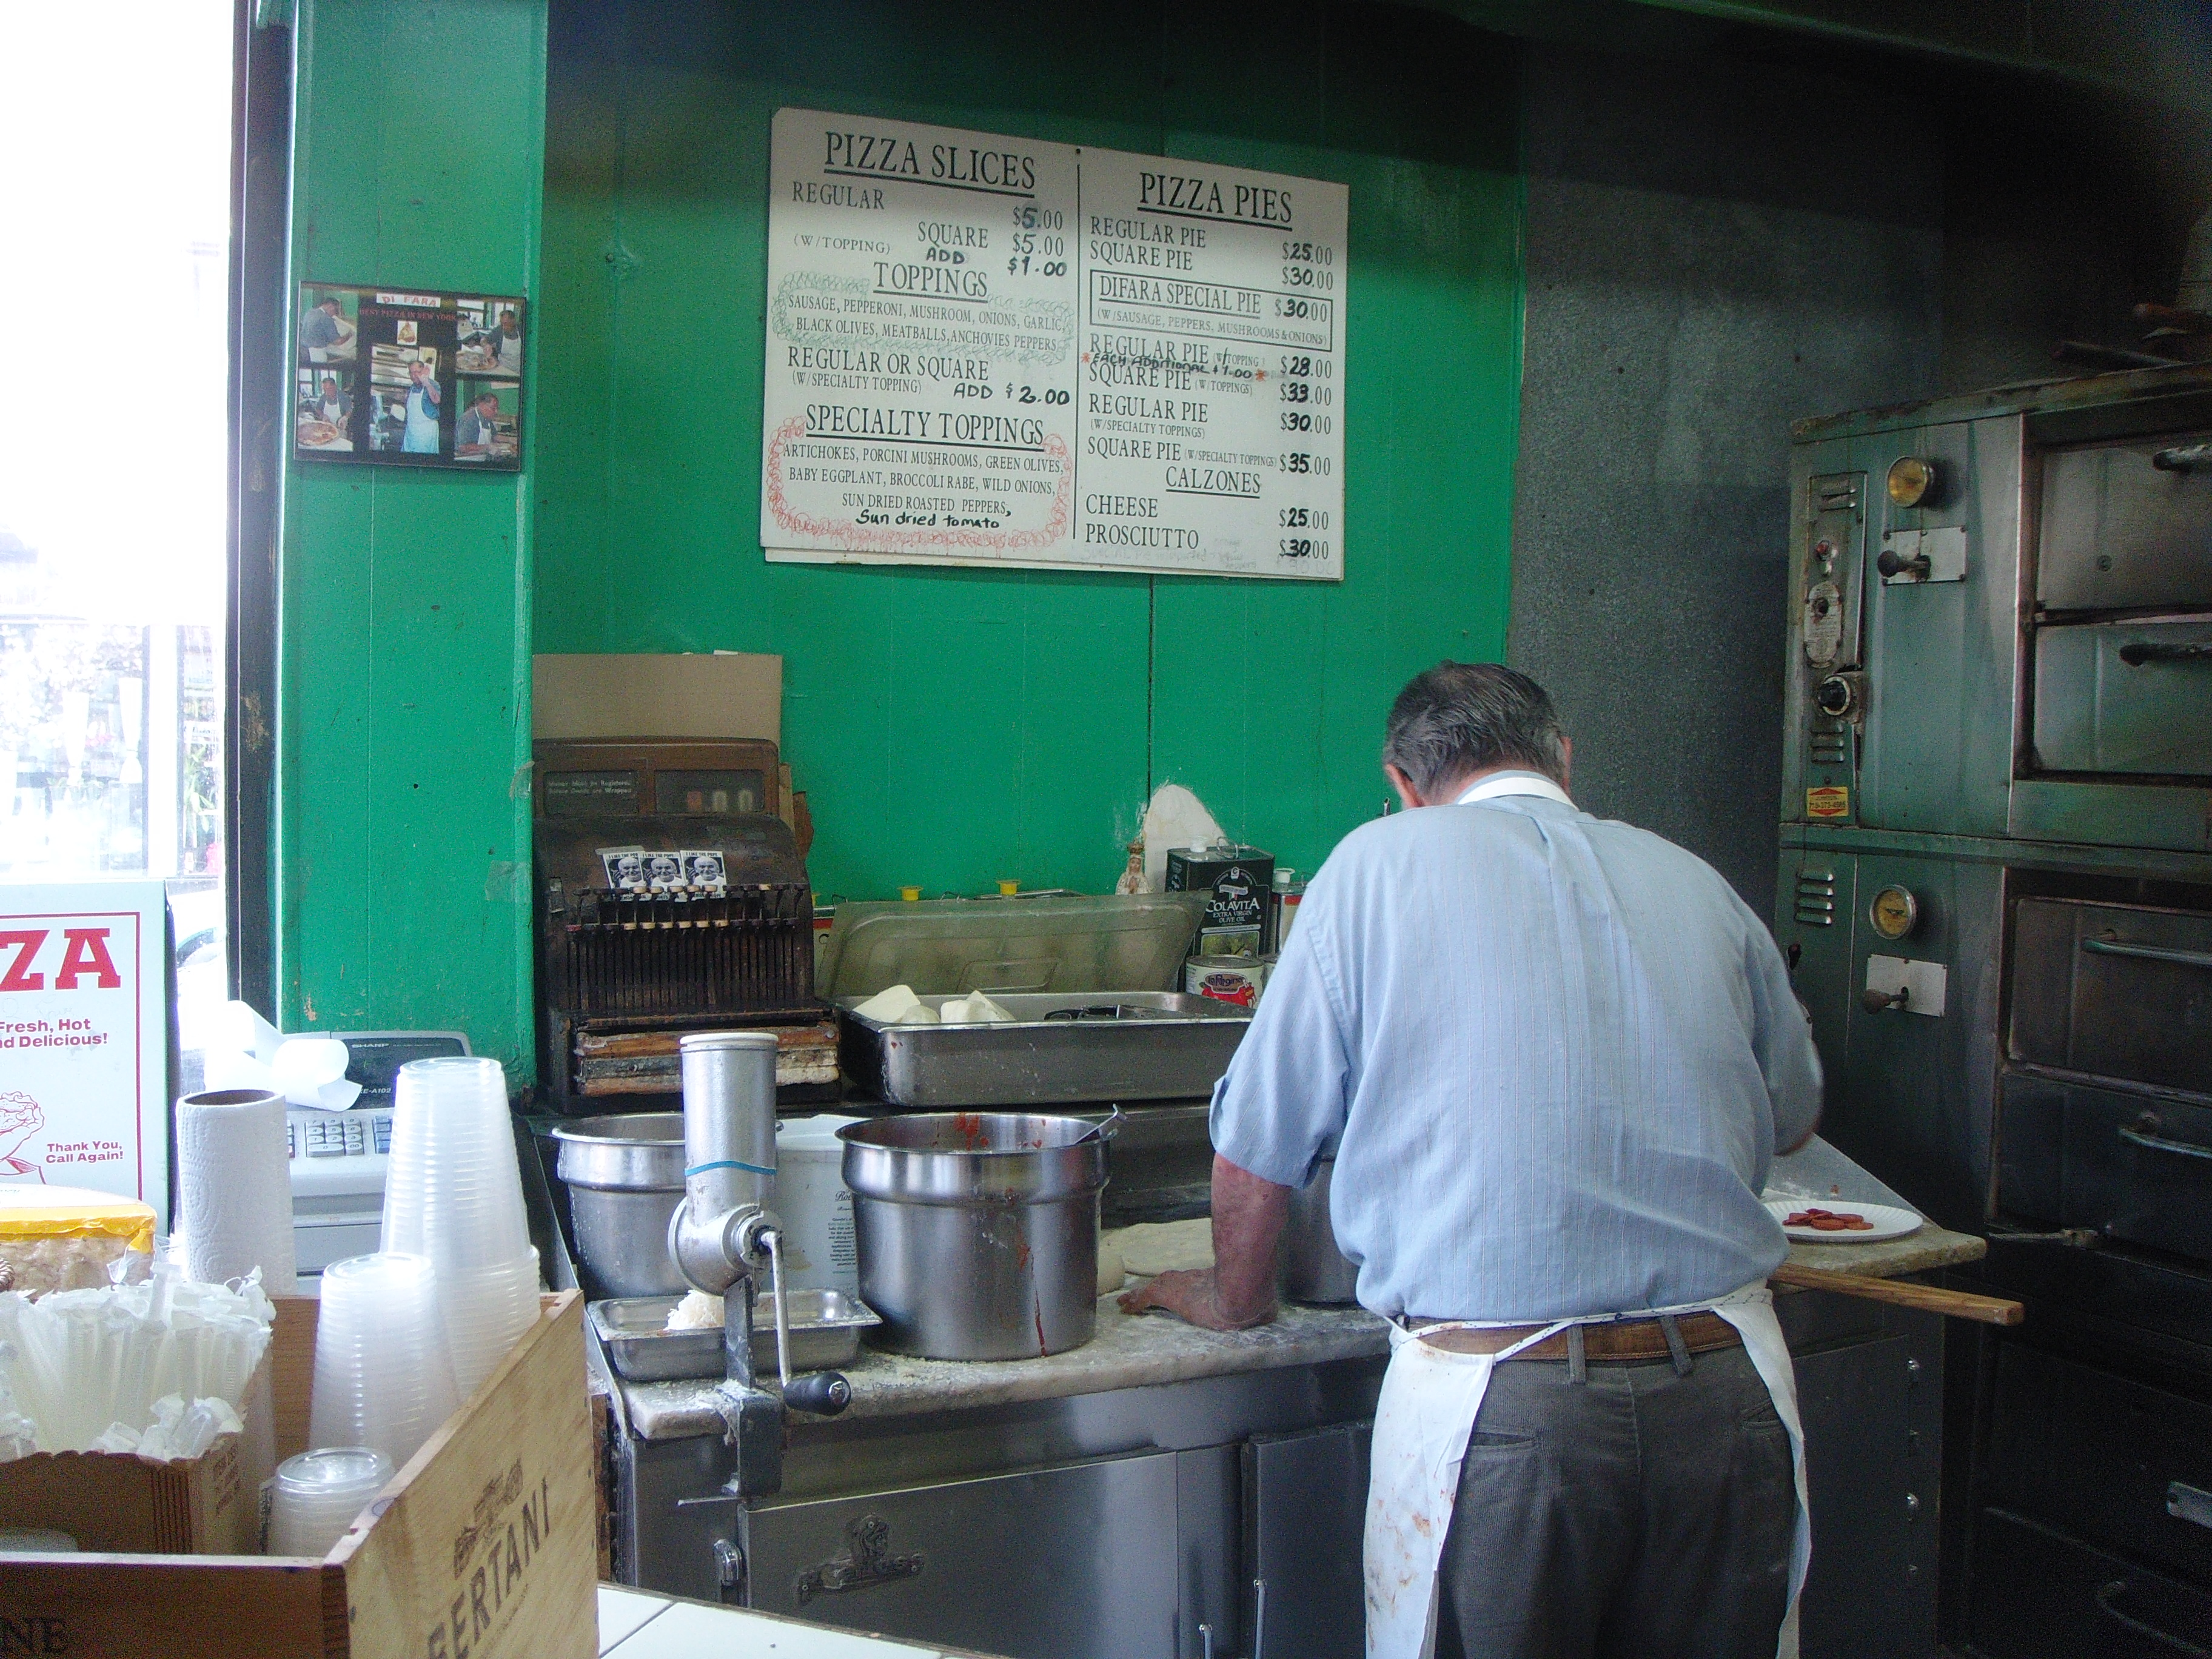 This is Di Fara - No really, just this guy and his son making pizzas nonstop